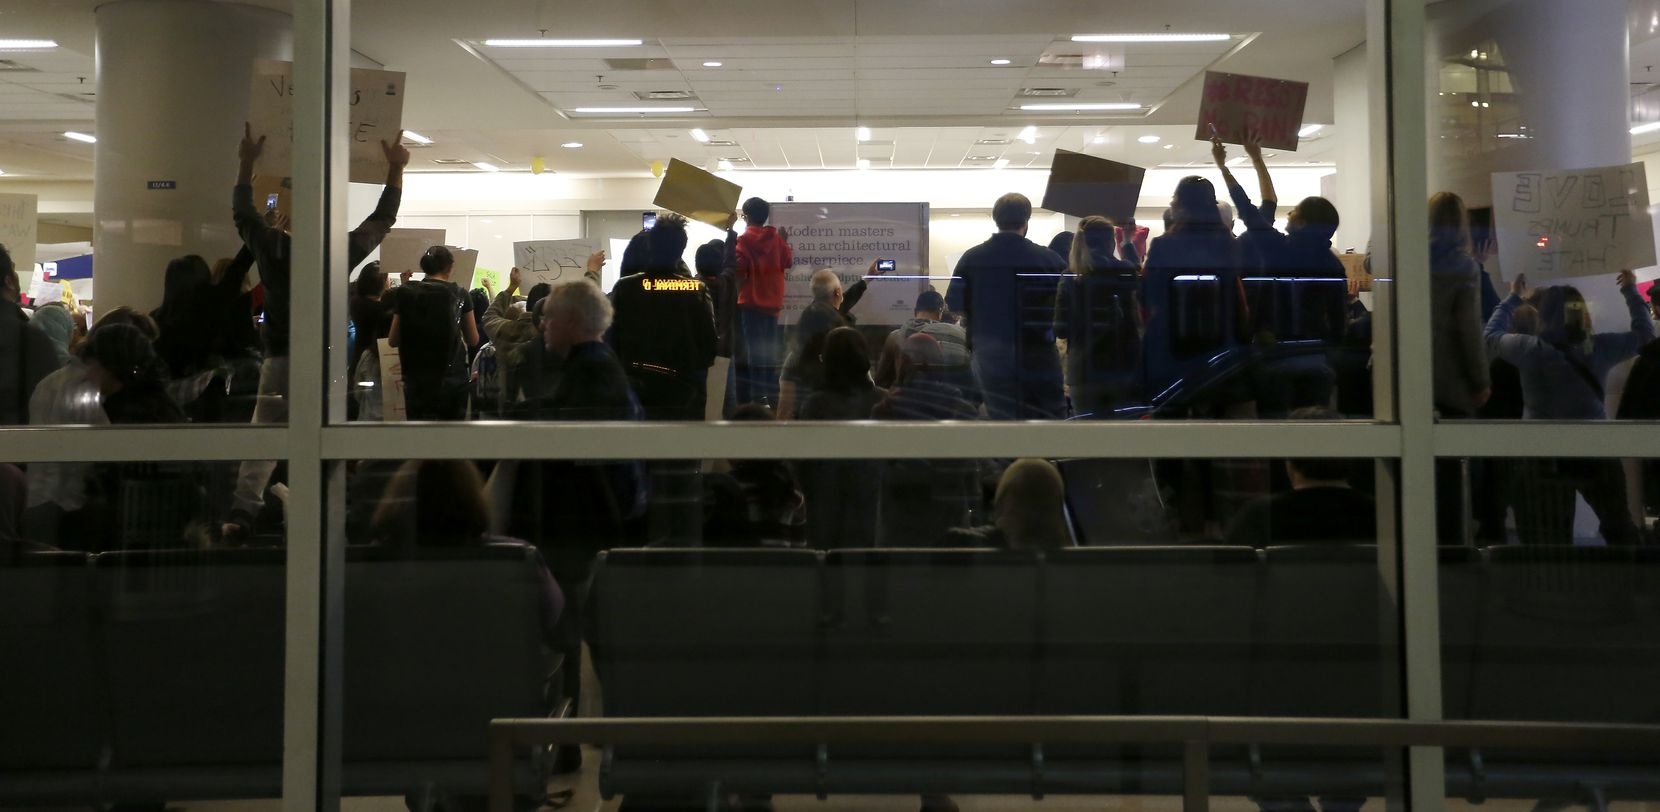 Protesters hold signs against Trump's executive order banning people coming from certain countries inside the Terminal D at Dallas/Fort Worth International Airport in Dallas, Saturday, Jan. 28, 2017.